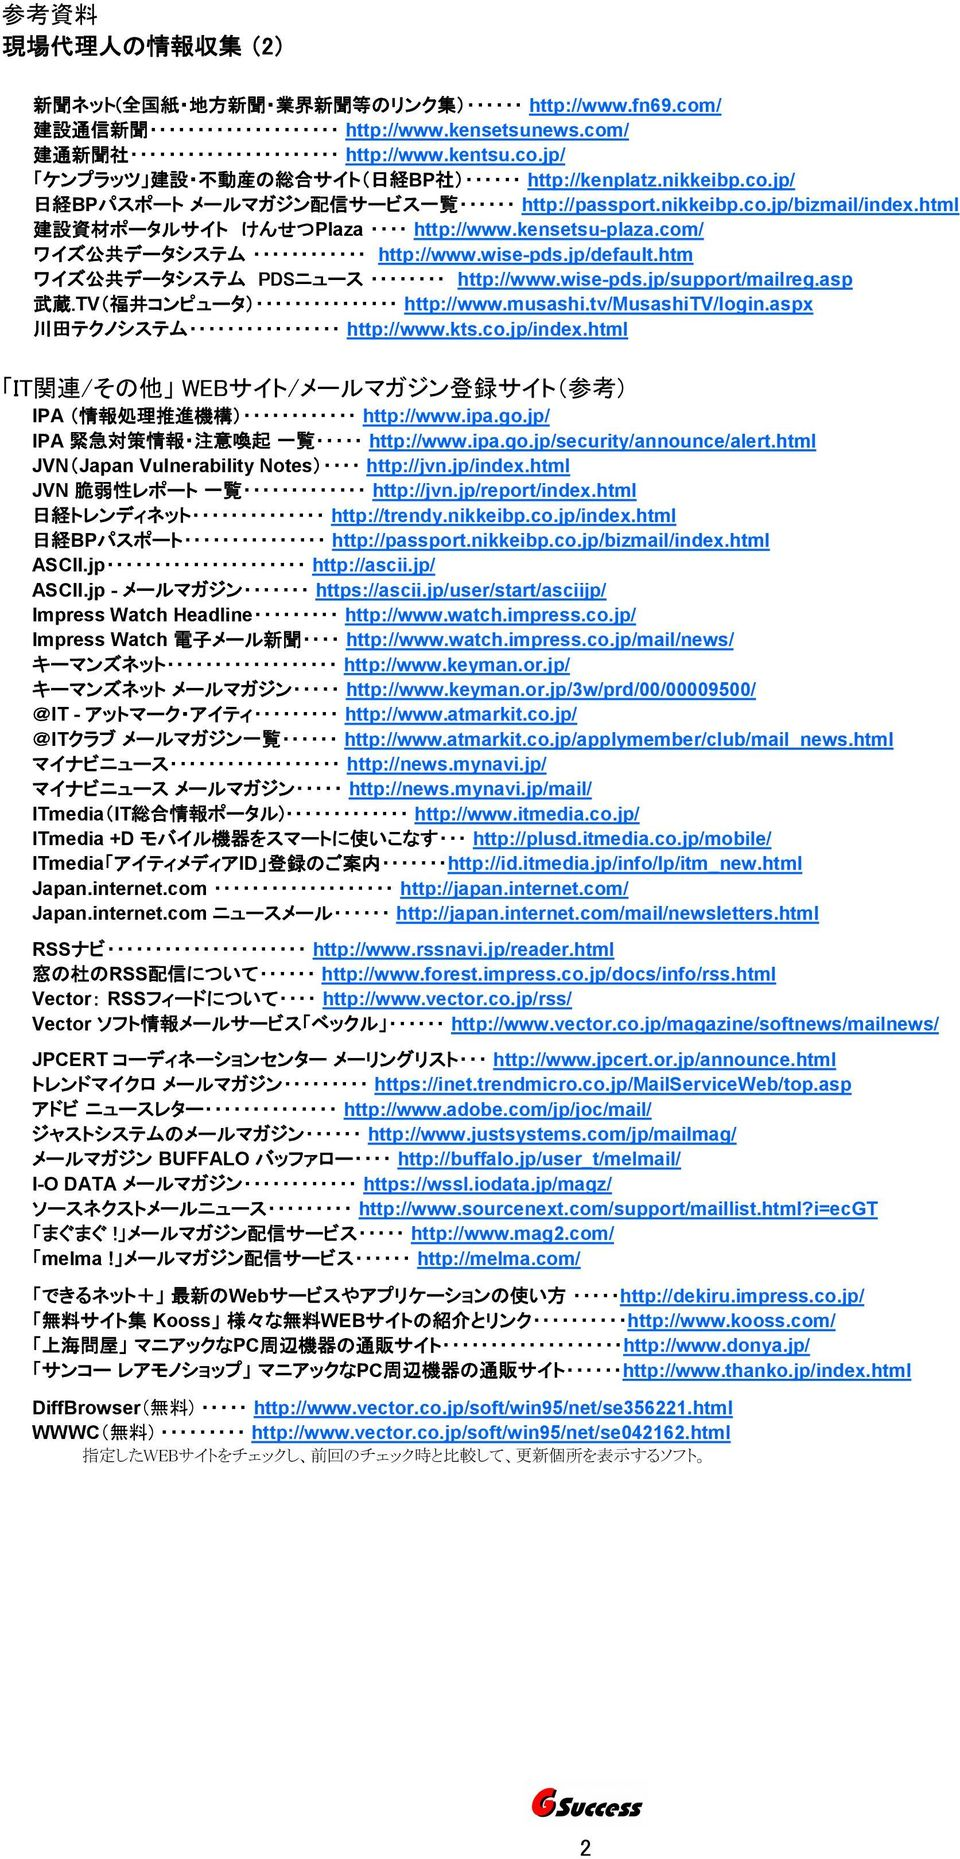 jp/default.htm ワイズ 公 共 データシステム PDSニュース http://www.wise-pds.jp/support/mailreg.asp 武 蔵.TV( 福 井 コンピュータ) http://www.musashi.tv/musashitv/login.aspx 川 田 テクノシステム http://www.kts.co.jp/index.